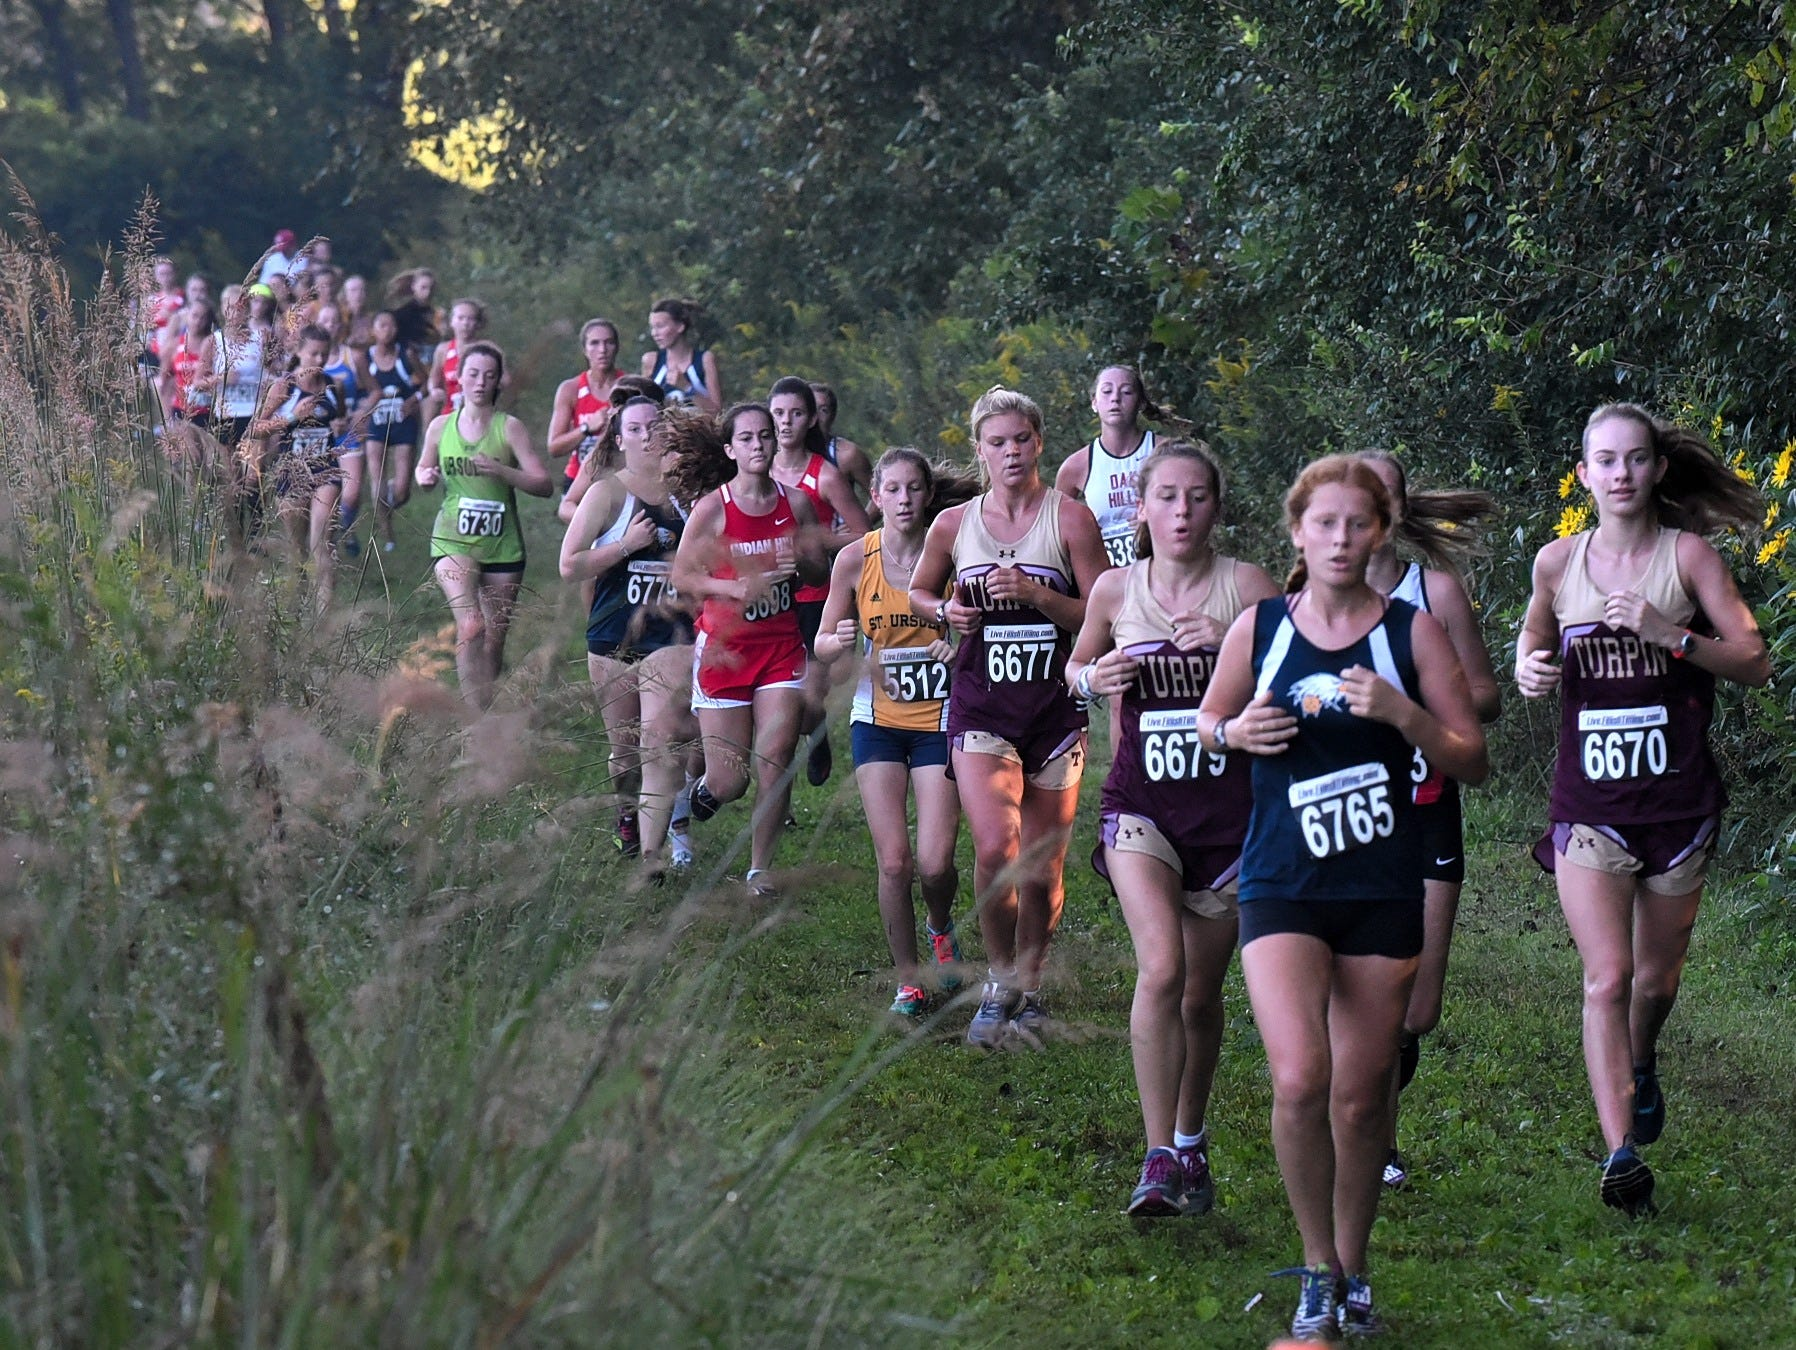 The trail of runners is long as the ladies run at the 2018 Milford Cross Country Invitational, Sept. 15, 2018.